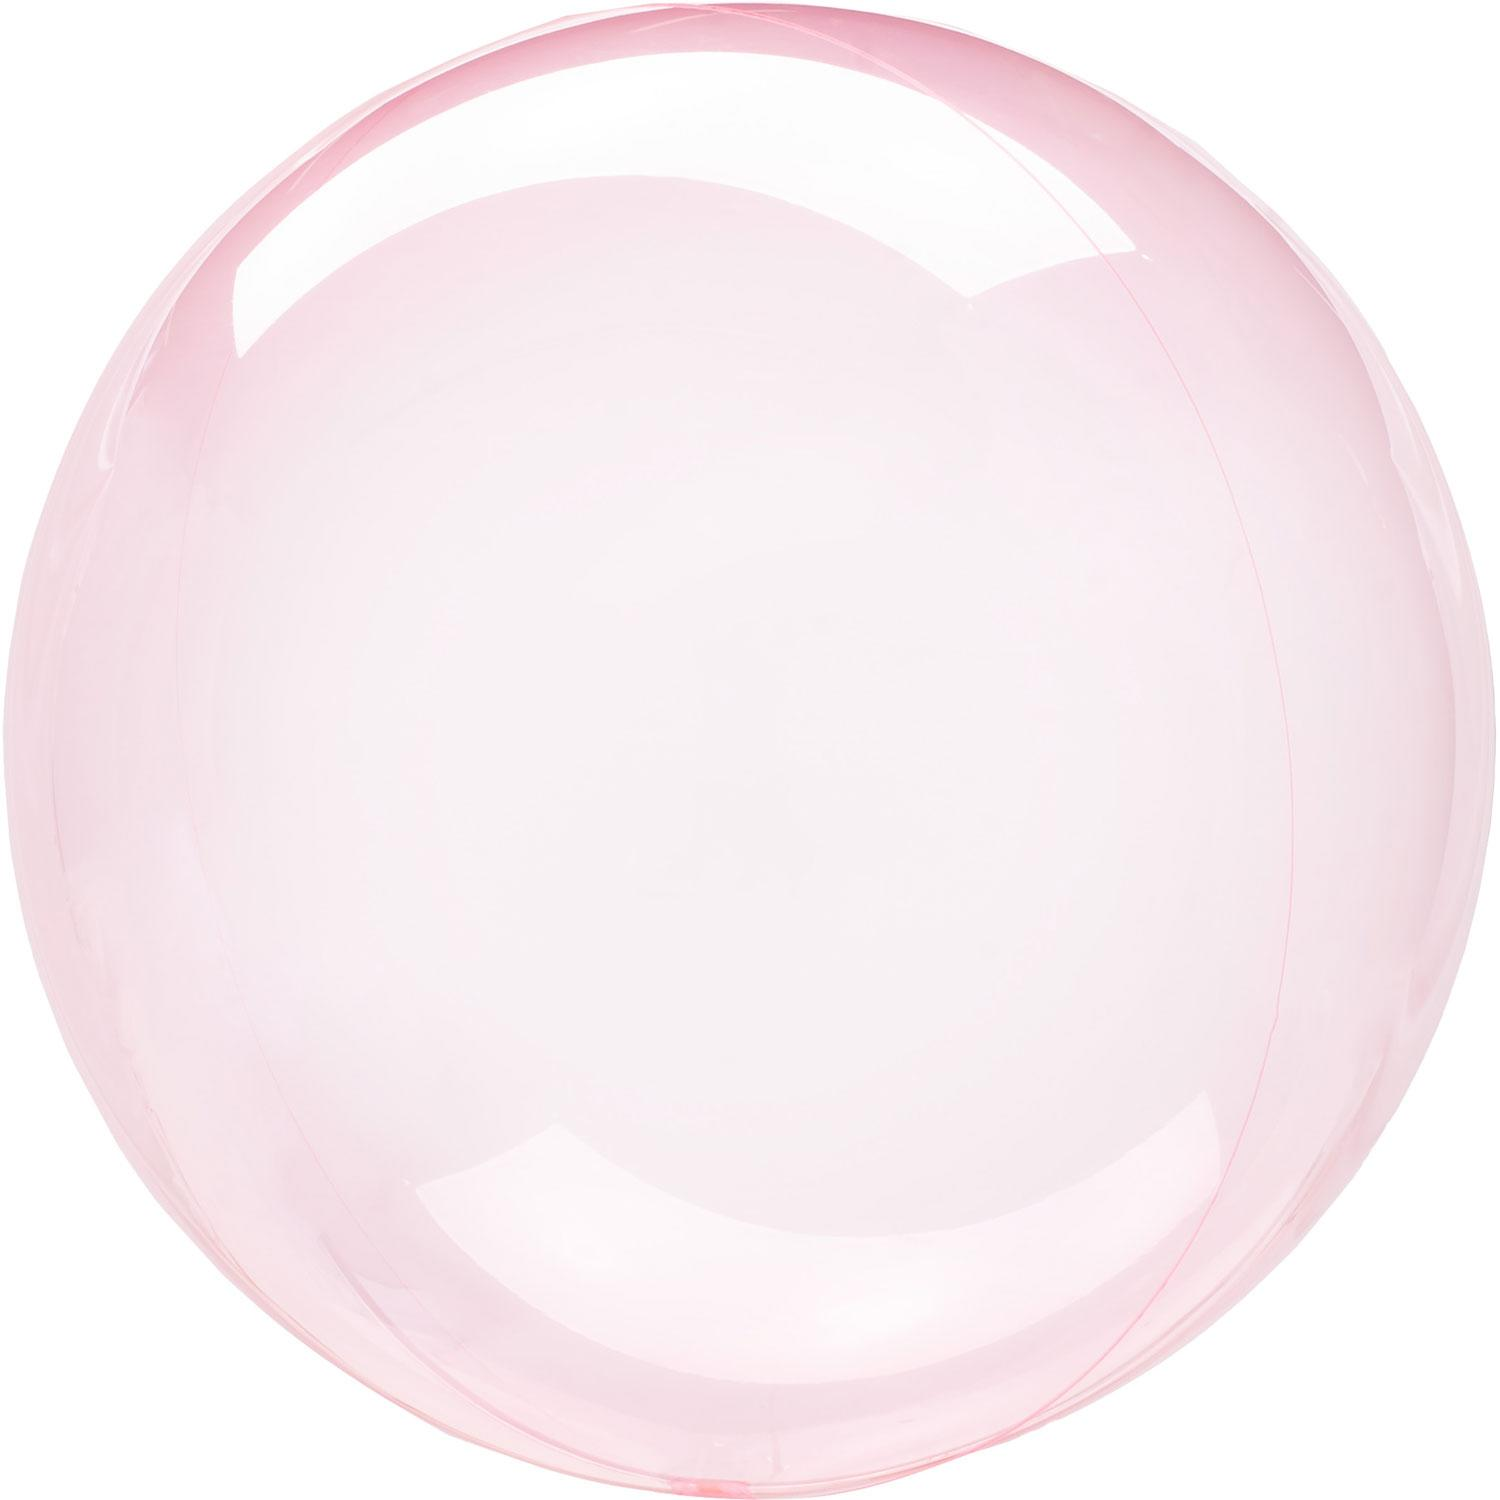 Crystal Clearz Bubble Balloon Dark Pink